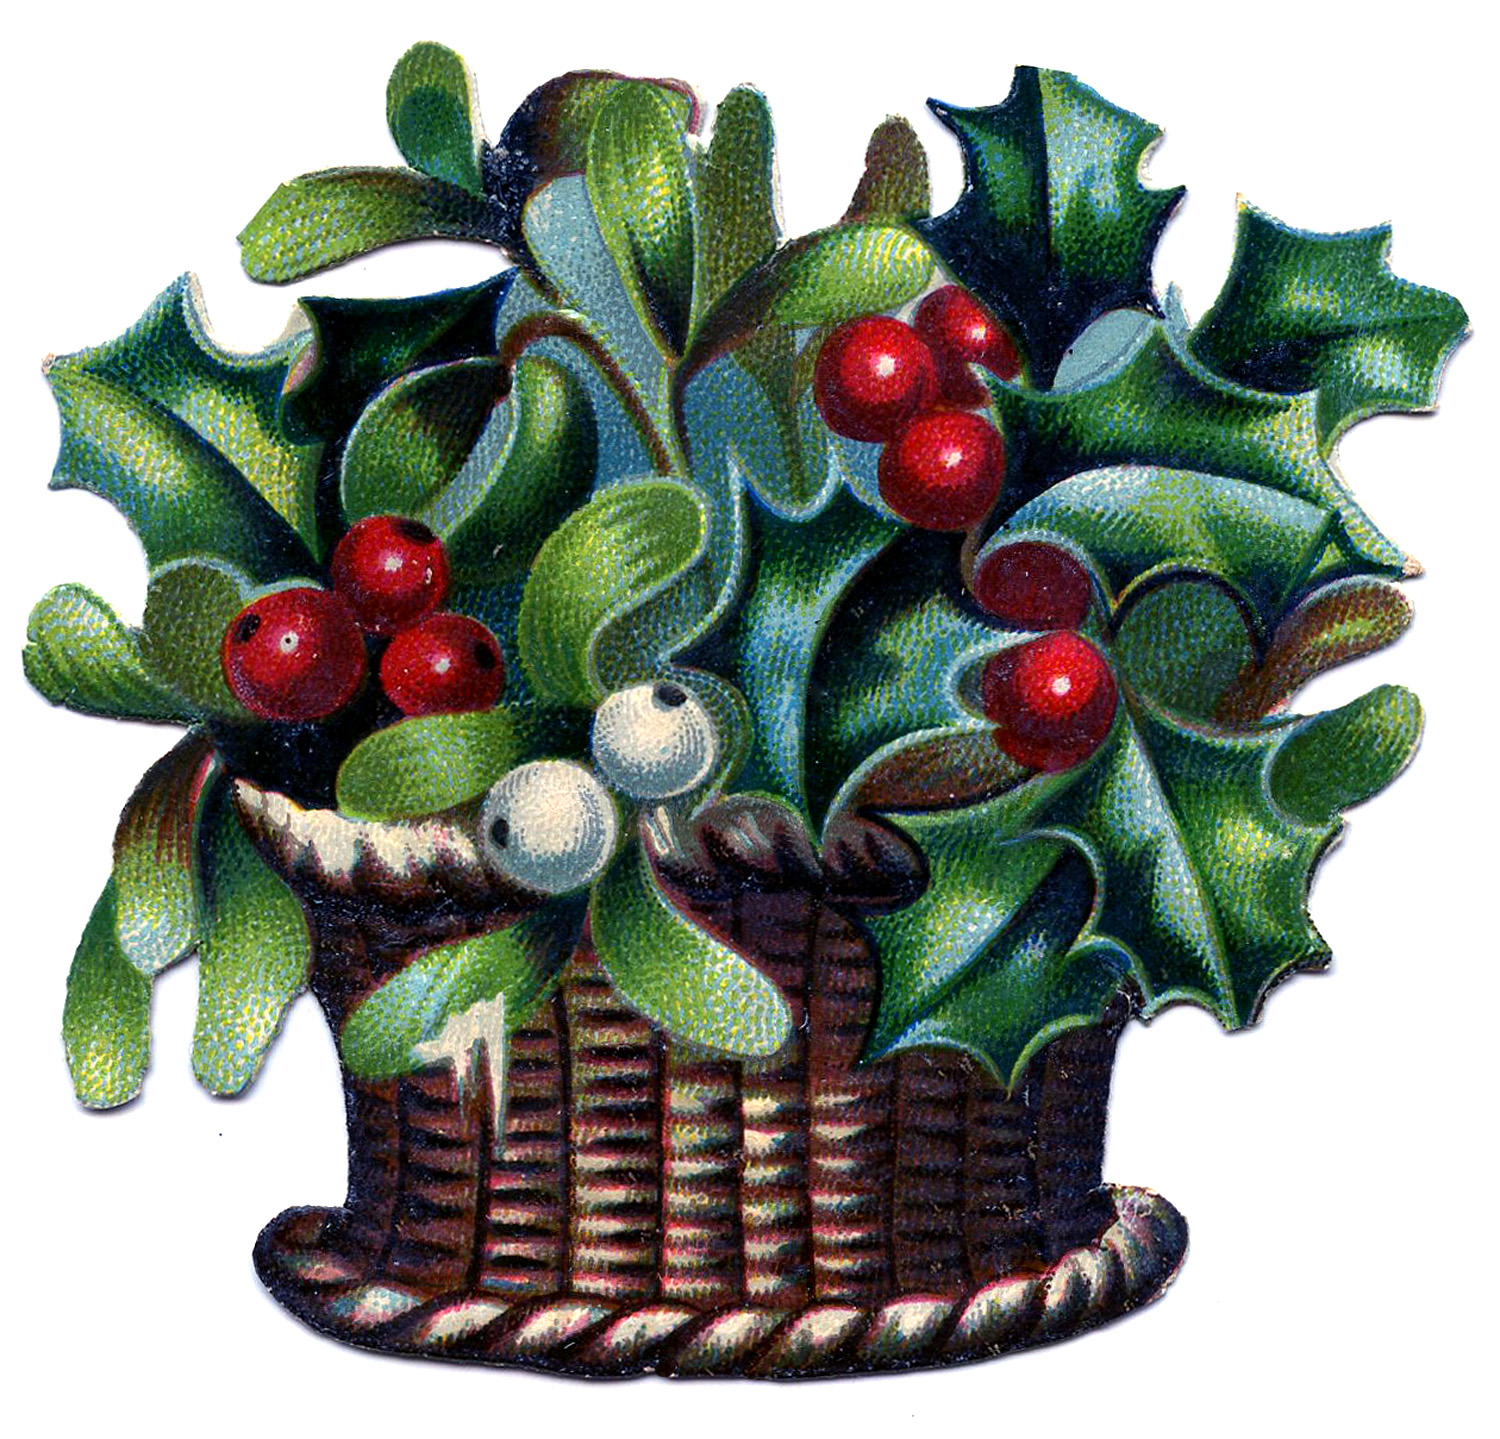 Vintage Christmas Image   Basket Of Holly And Mistletoe   The Graphics